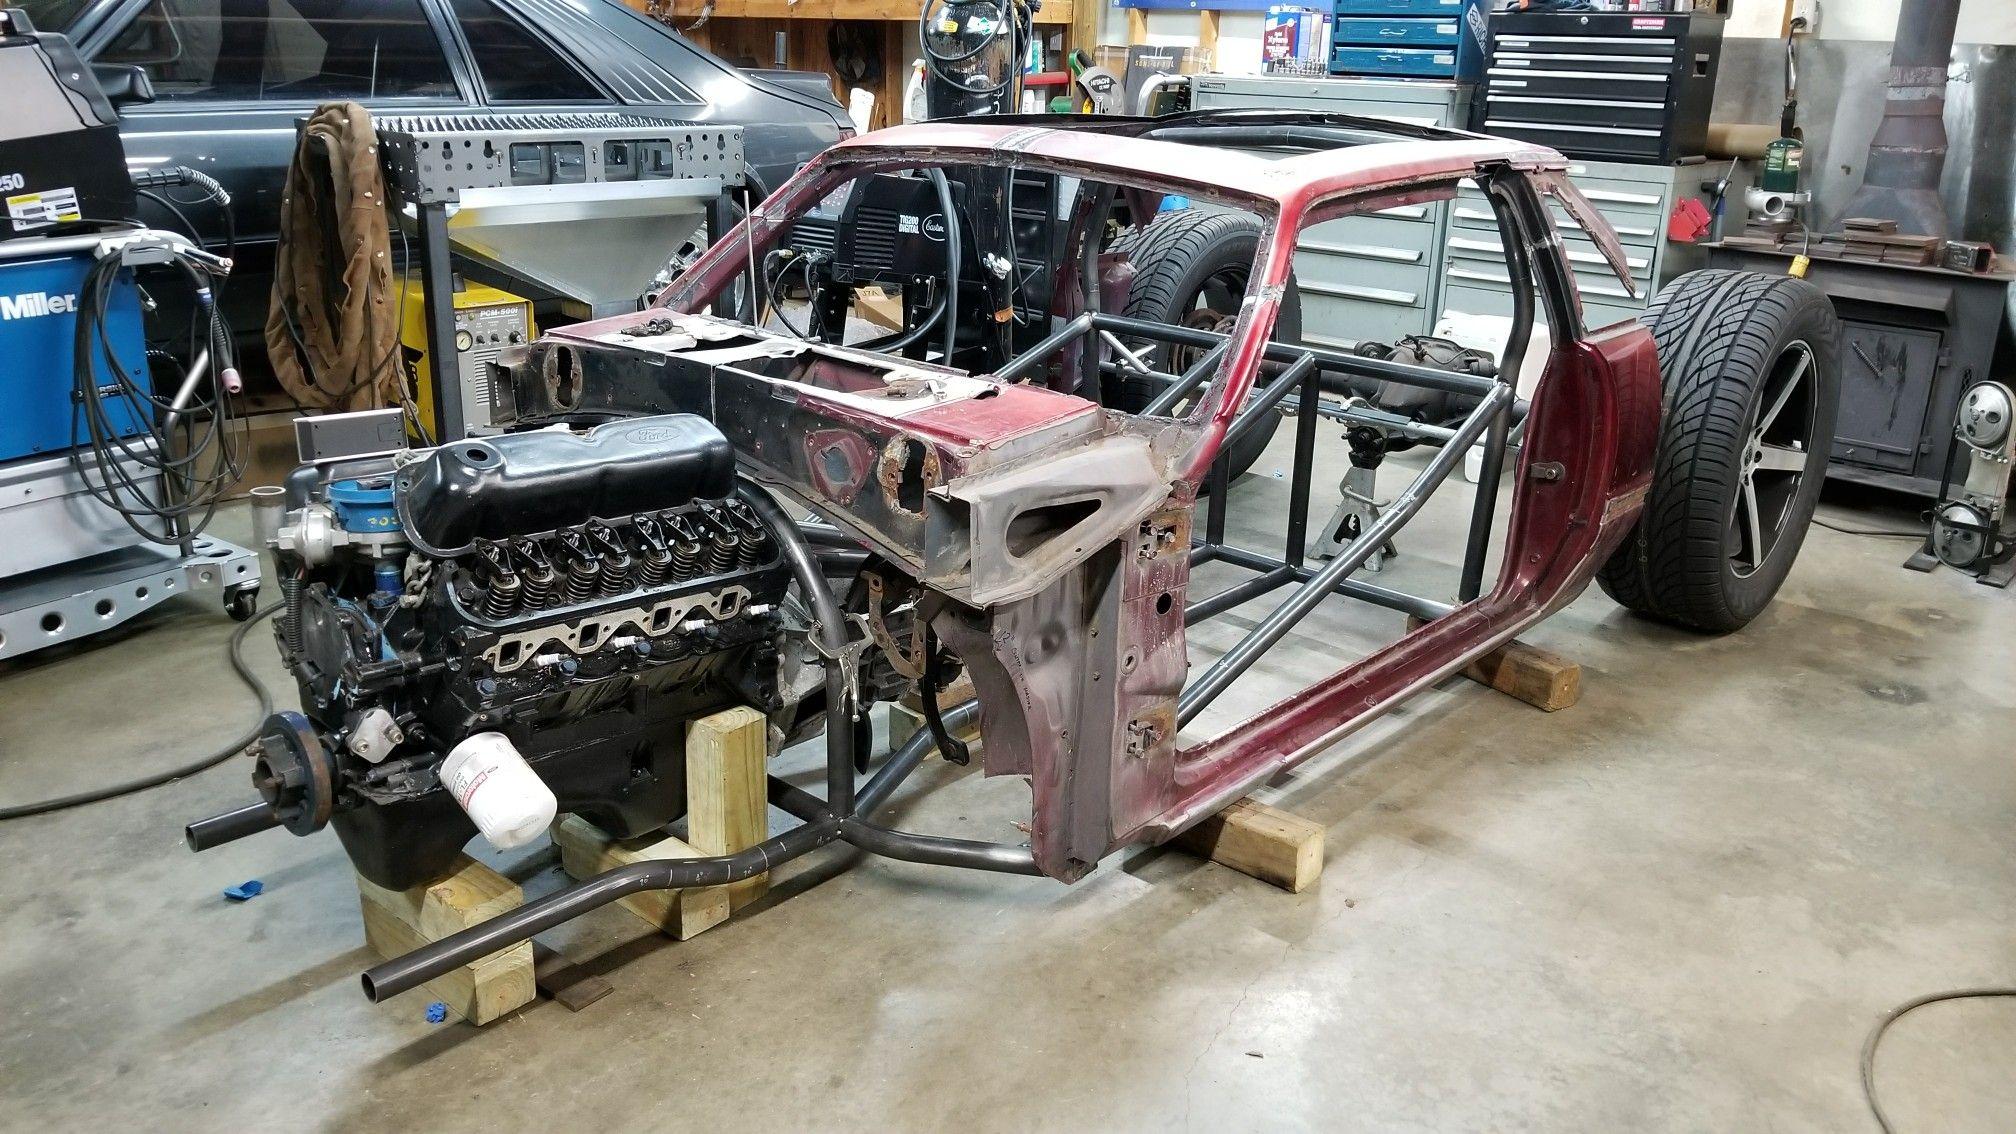 hight resolution of mustang foxbody hot rod build bibbster complete build can be seen on the fab forums youtube channel